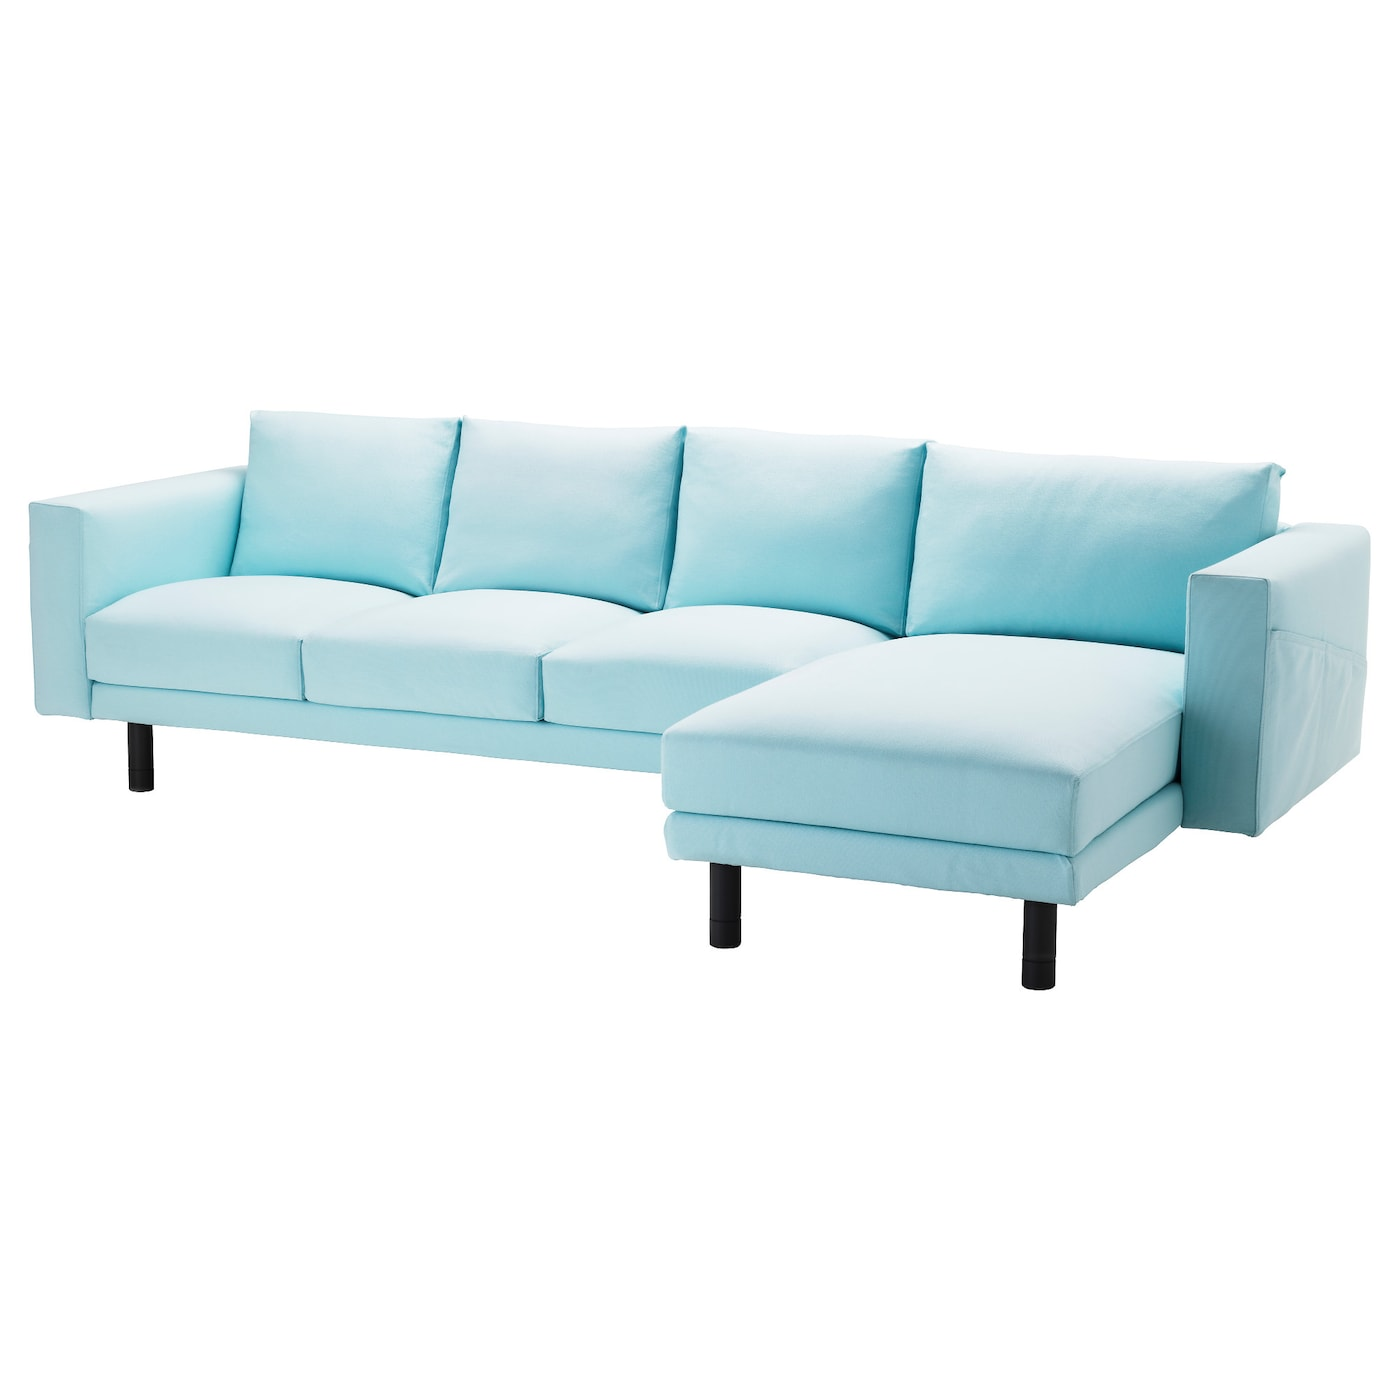 Norsborg three seat sofa and chaise longue gr sbo light for Chaise longue sofa